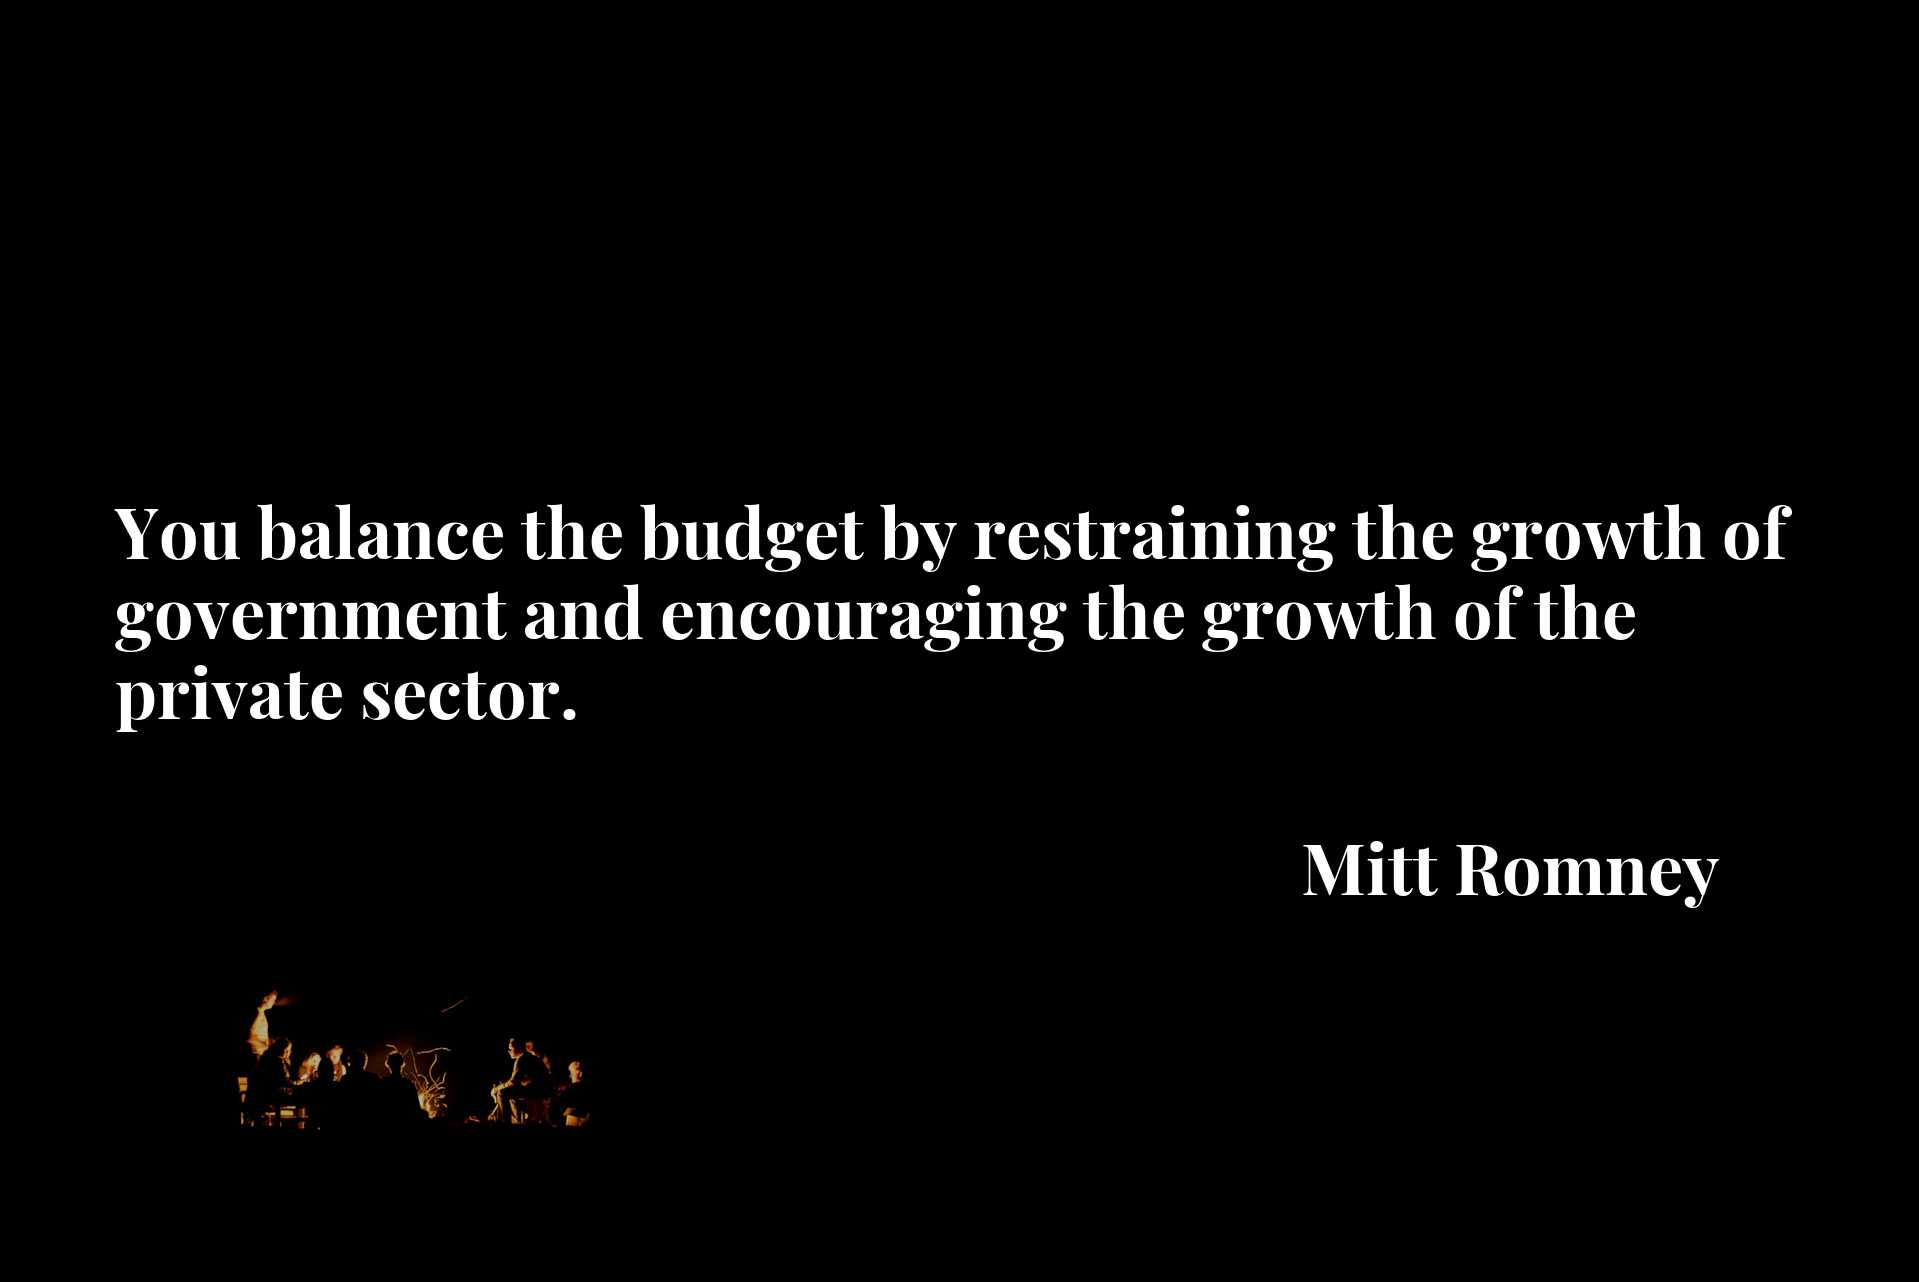 You balance the budget by restraining the growth of government and encouraging the growth of the private sector.